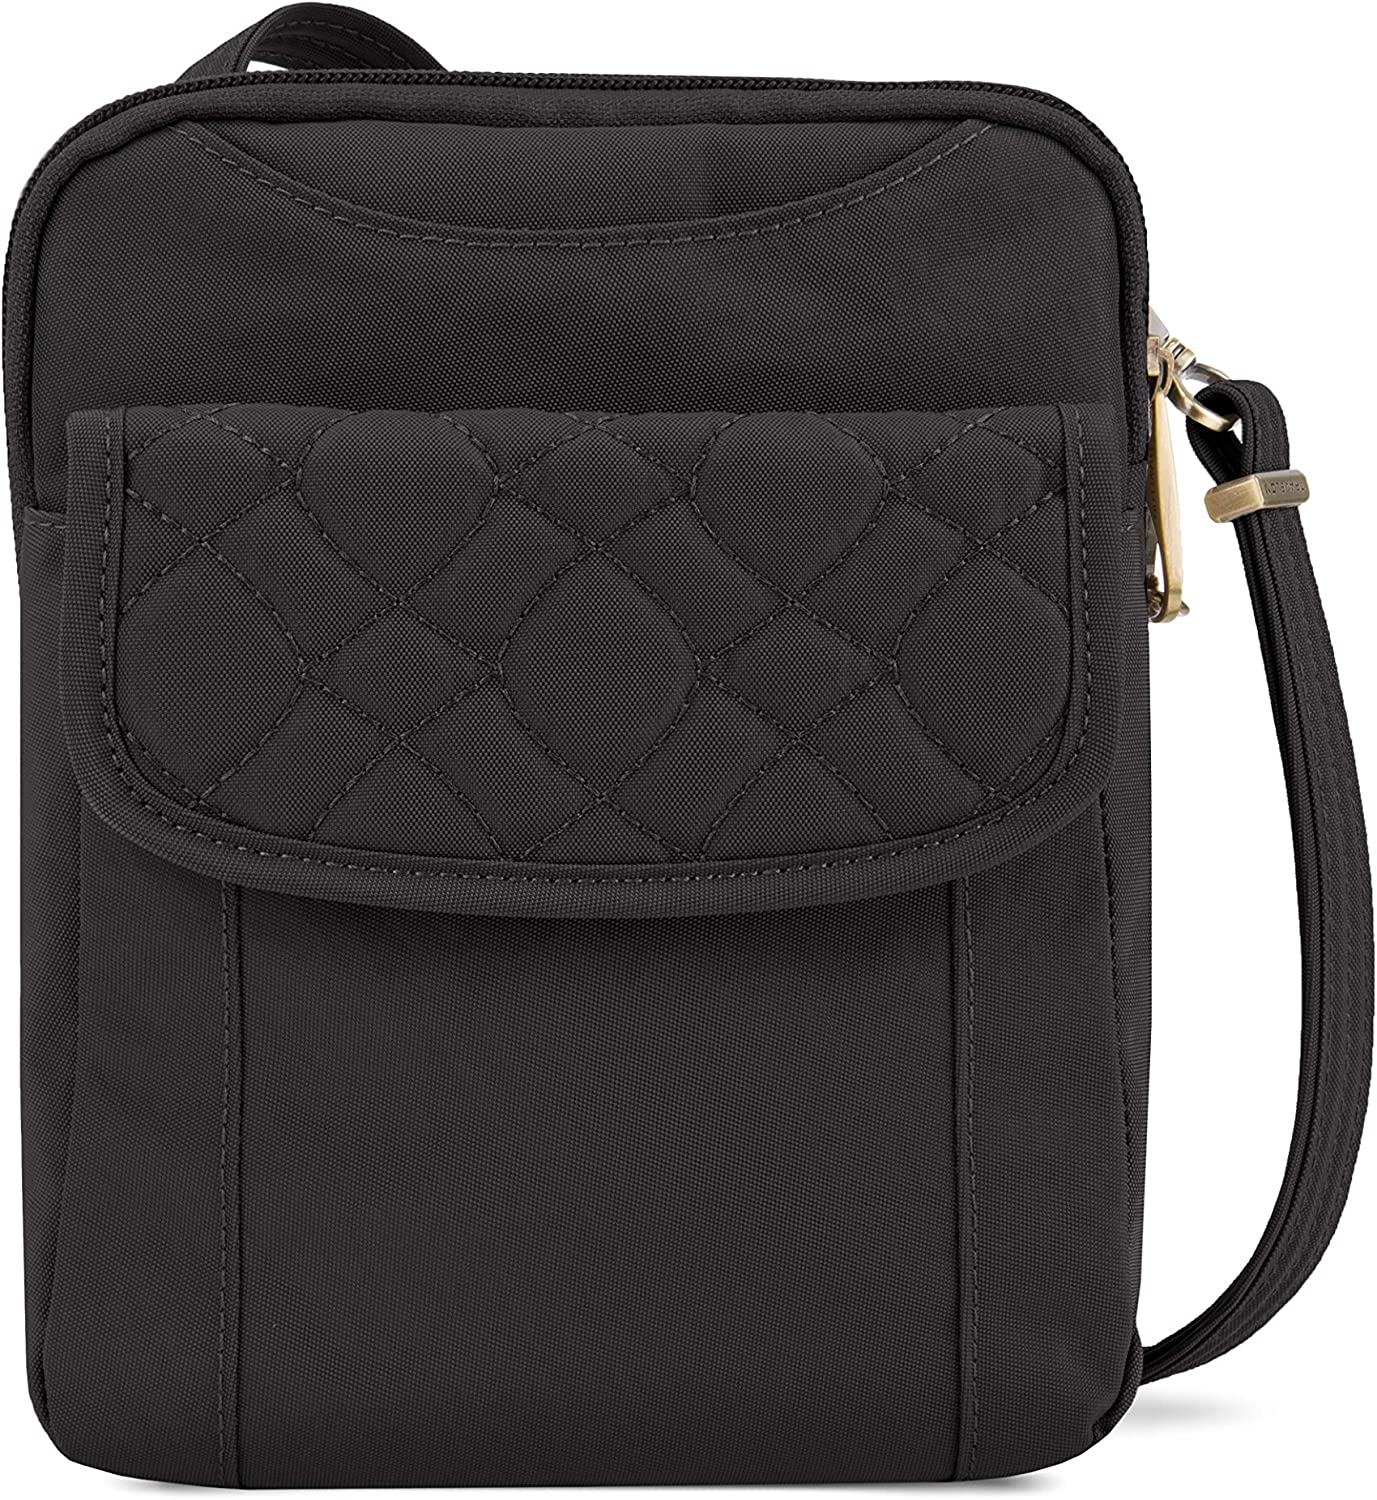 Travelon Anti-Theft Signature Quilted Slim Pouch